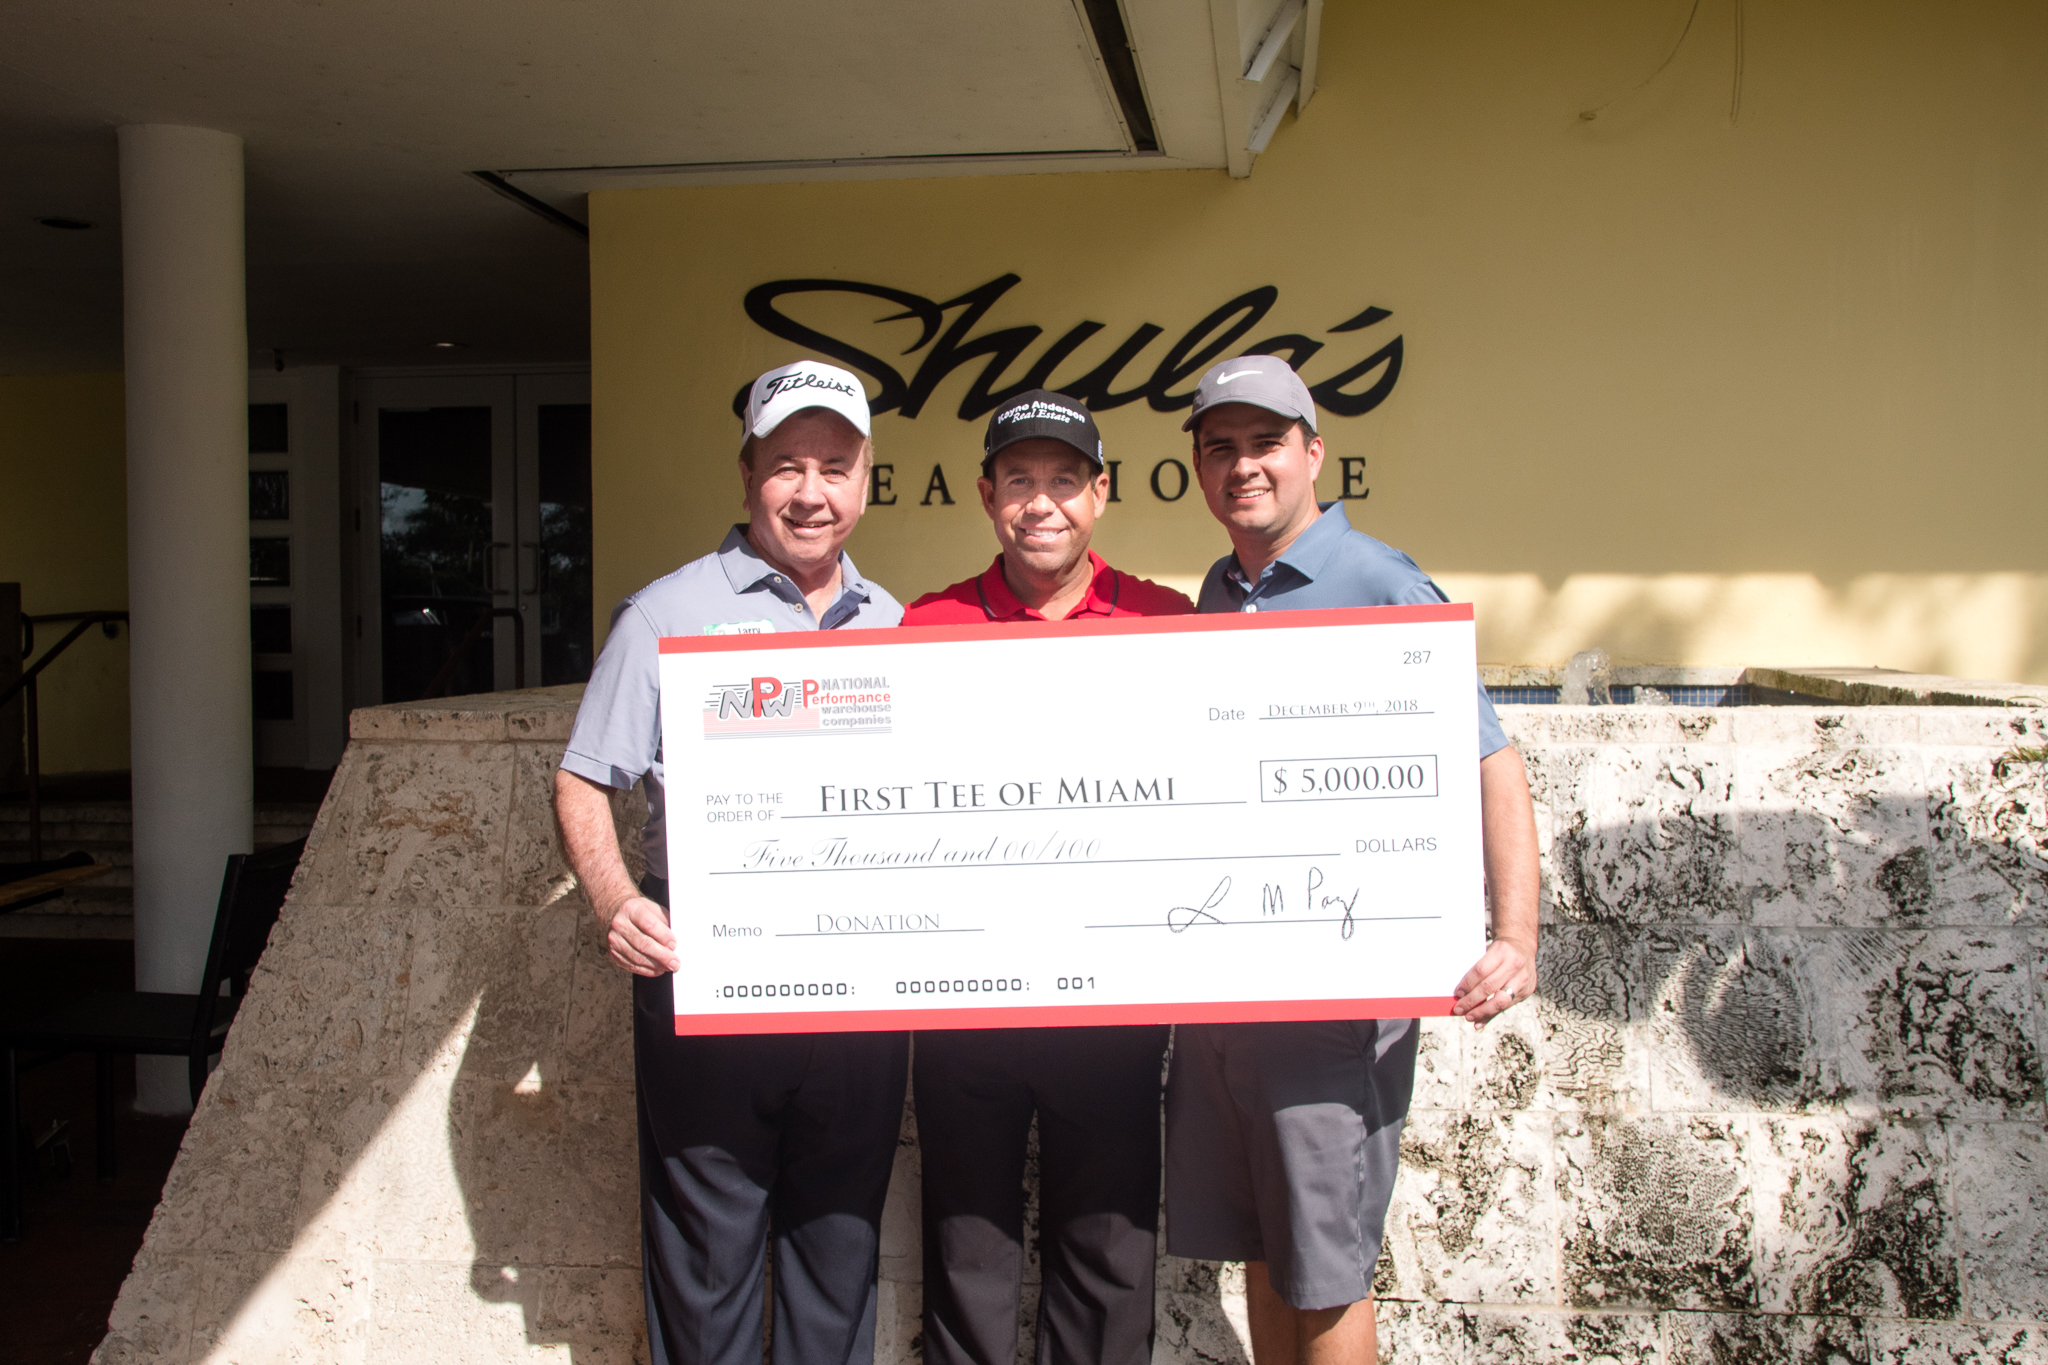 NPW raised $5,000 for First Tee Miami during a charity golf tournament in December.